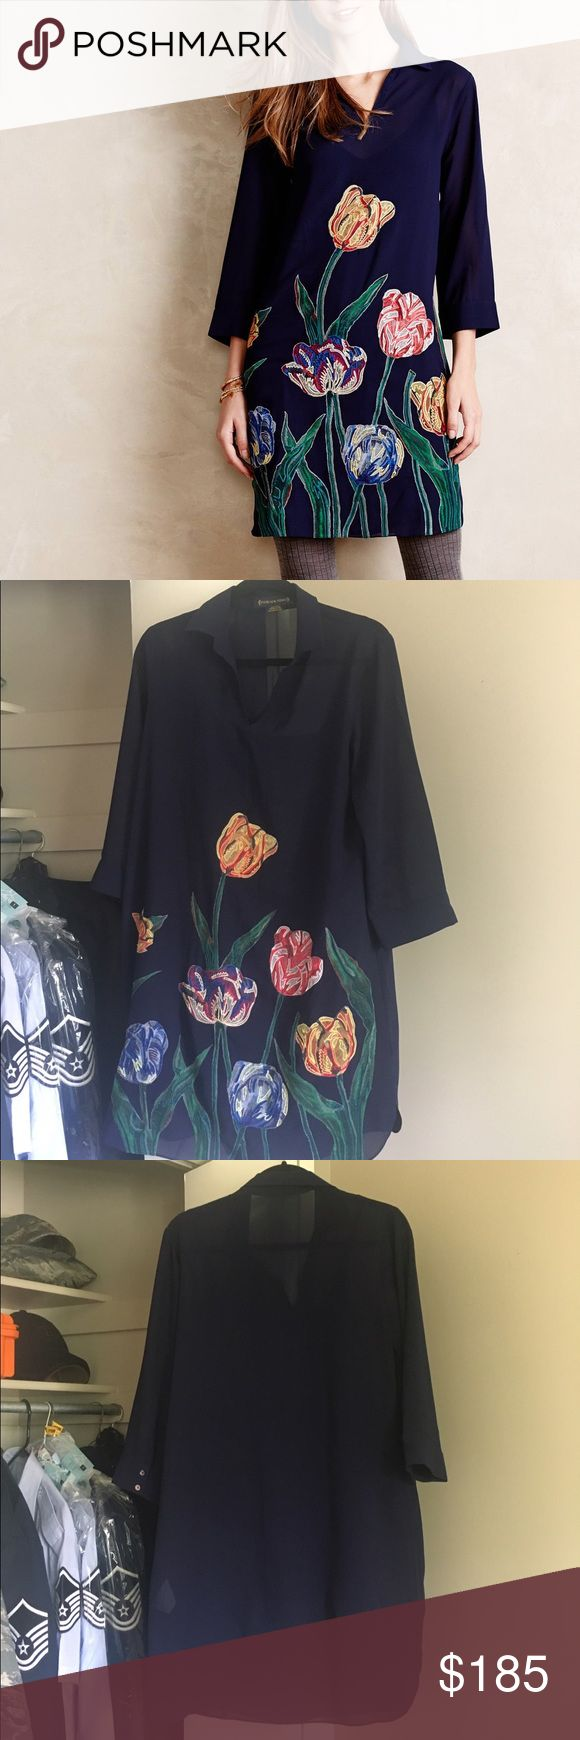 Painted Tulips Tunic By Pankaj and Nidhi. EUC.  No offers, please. Prices firm. Every item sold as-is; please ask any questions prior to purchasing. Items will be pressed where applicable prior to shipping. Anthropologie Dresses